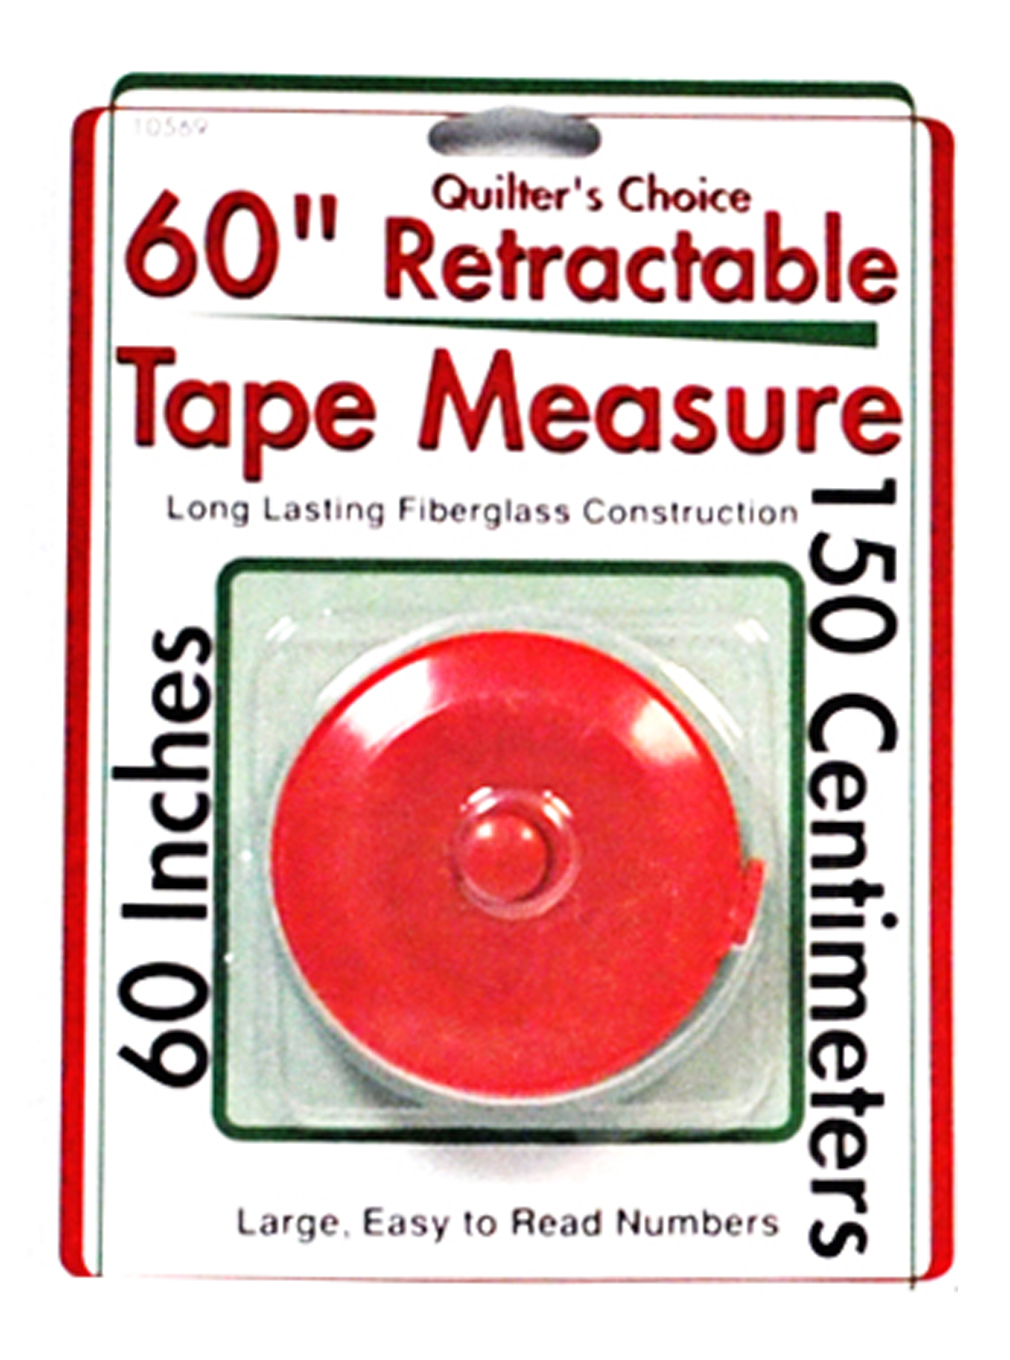 quilters choice 60 inch retractable tape measure red